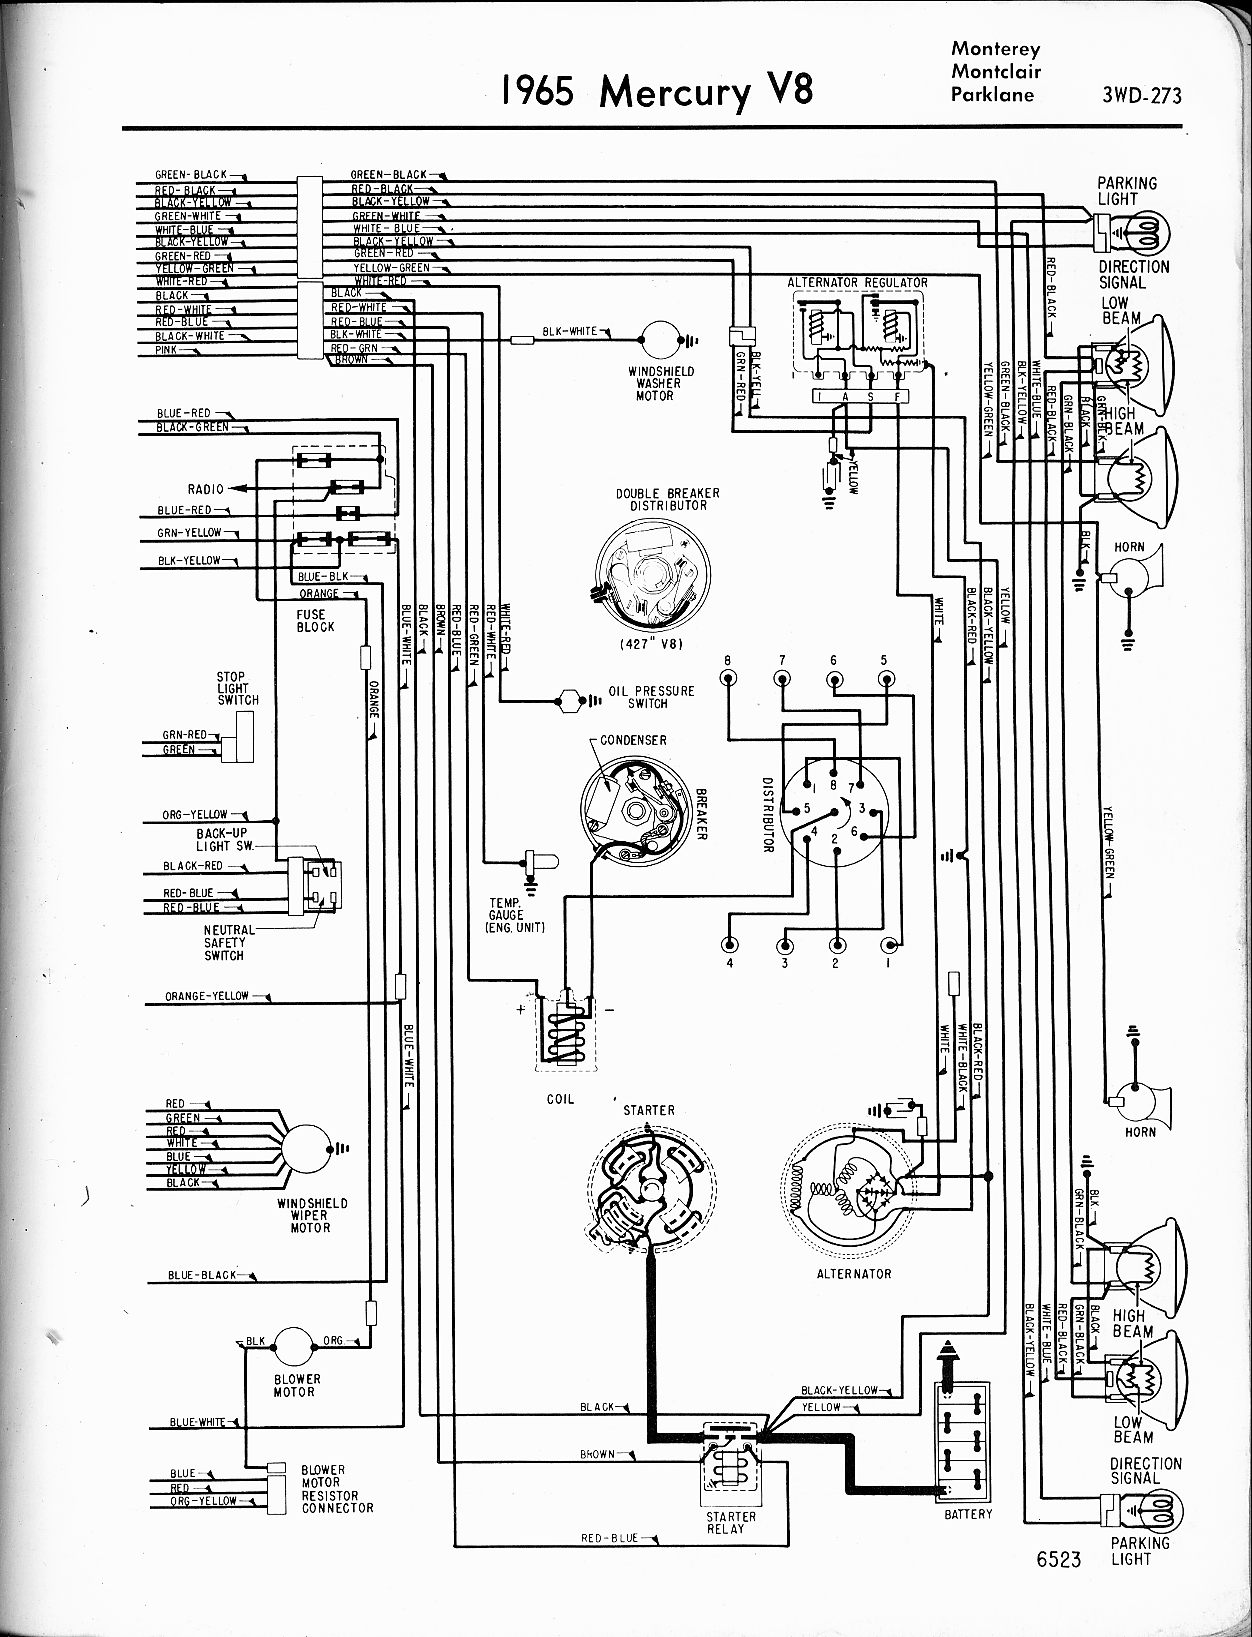 Mercury wiring diagrams the old car manual project 1965 v8 monterey montclair parklane left page sciox Images